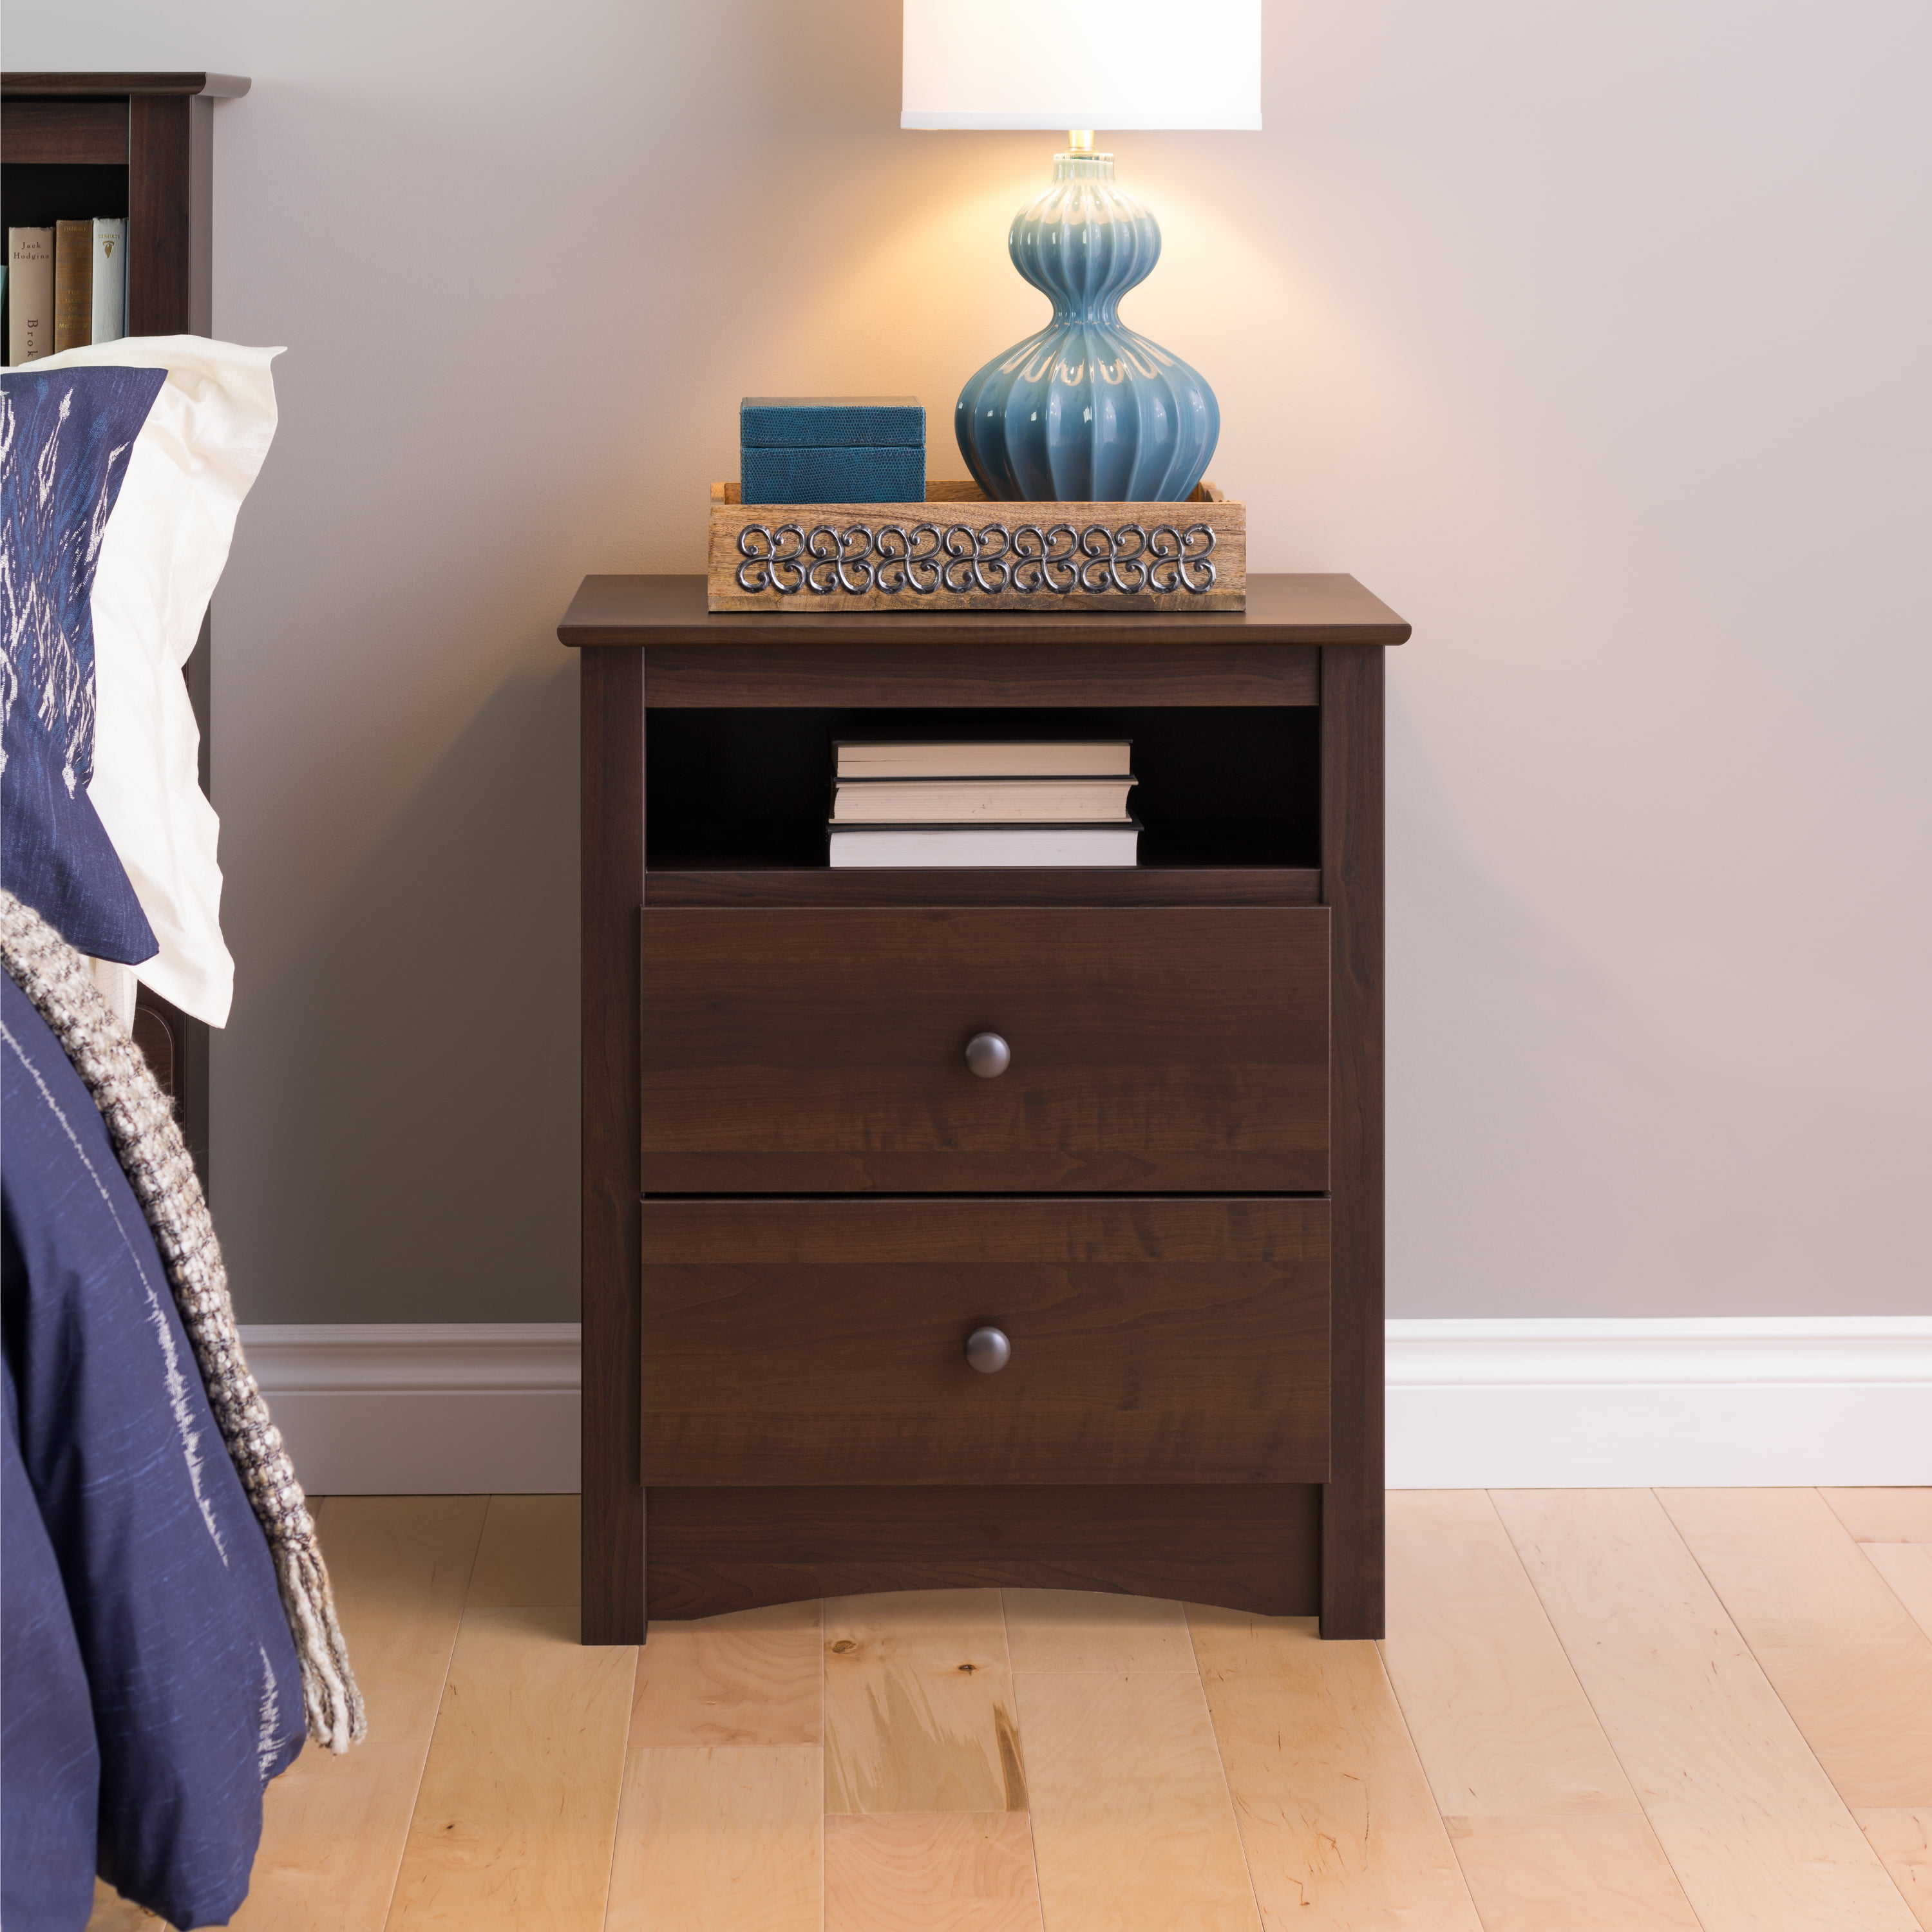 Fremont 2-Drawer Tall Nightstand With Open Cubbie, Espresso by Prepac Manufacturing Ltd.